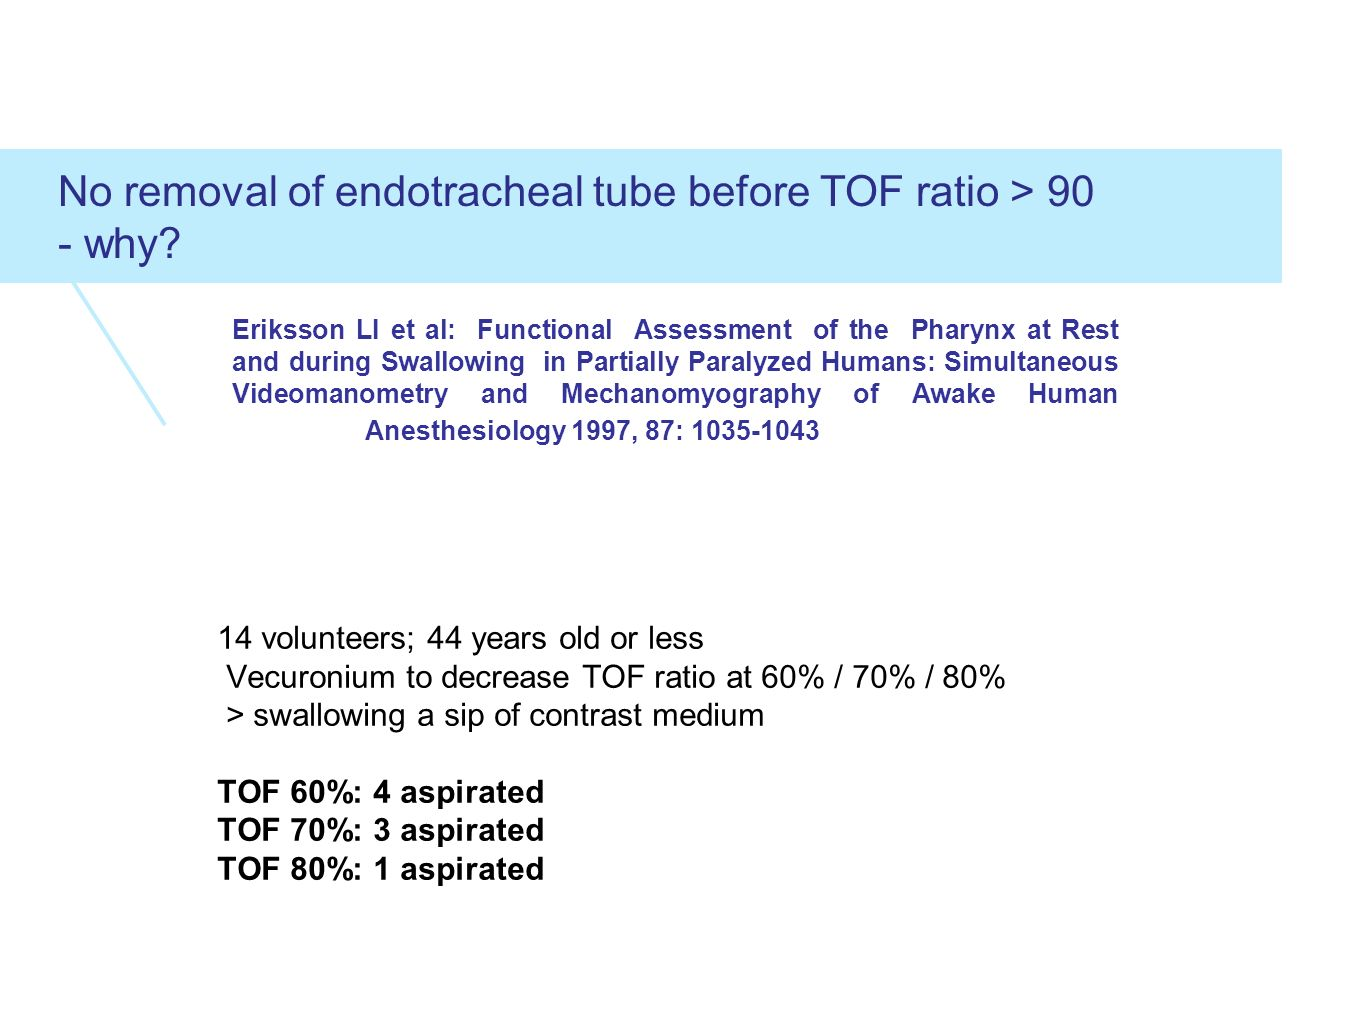 No removal of endotracheal tube before TOF ratio > 90 - why